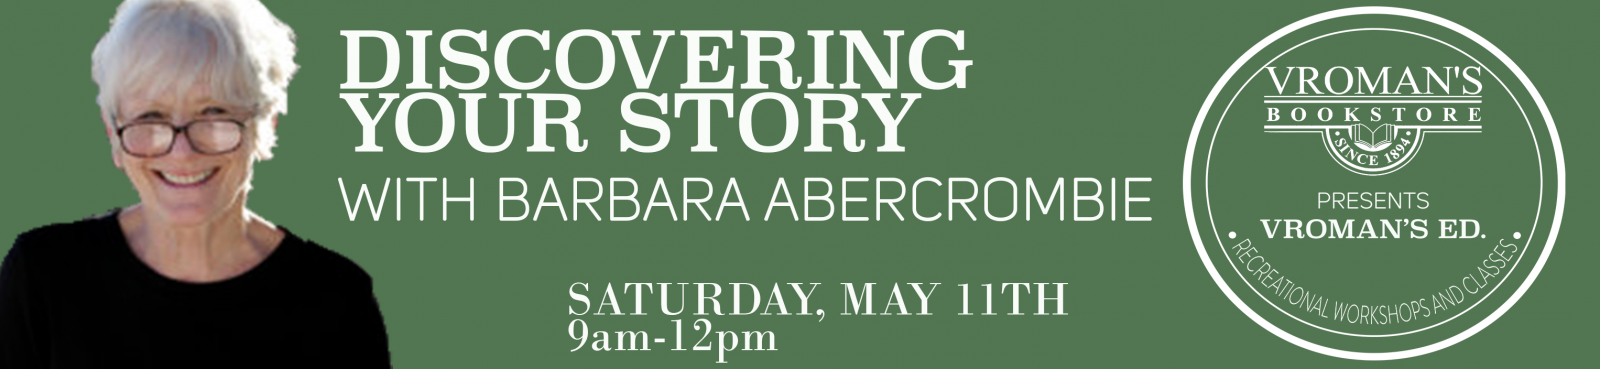 Barbara Abercrombie Writing Workshop